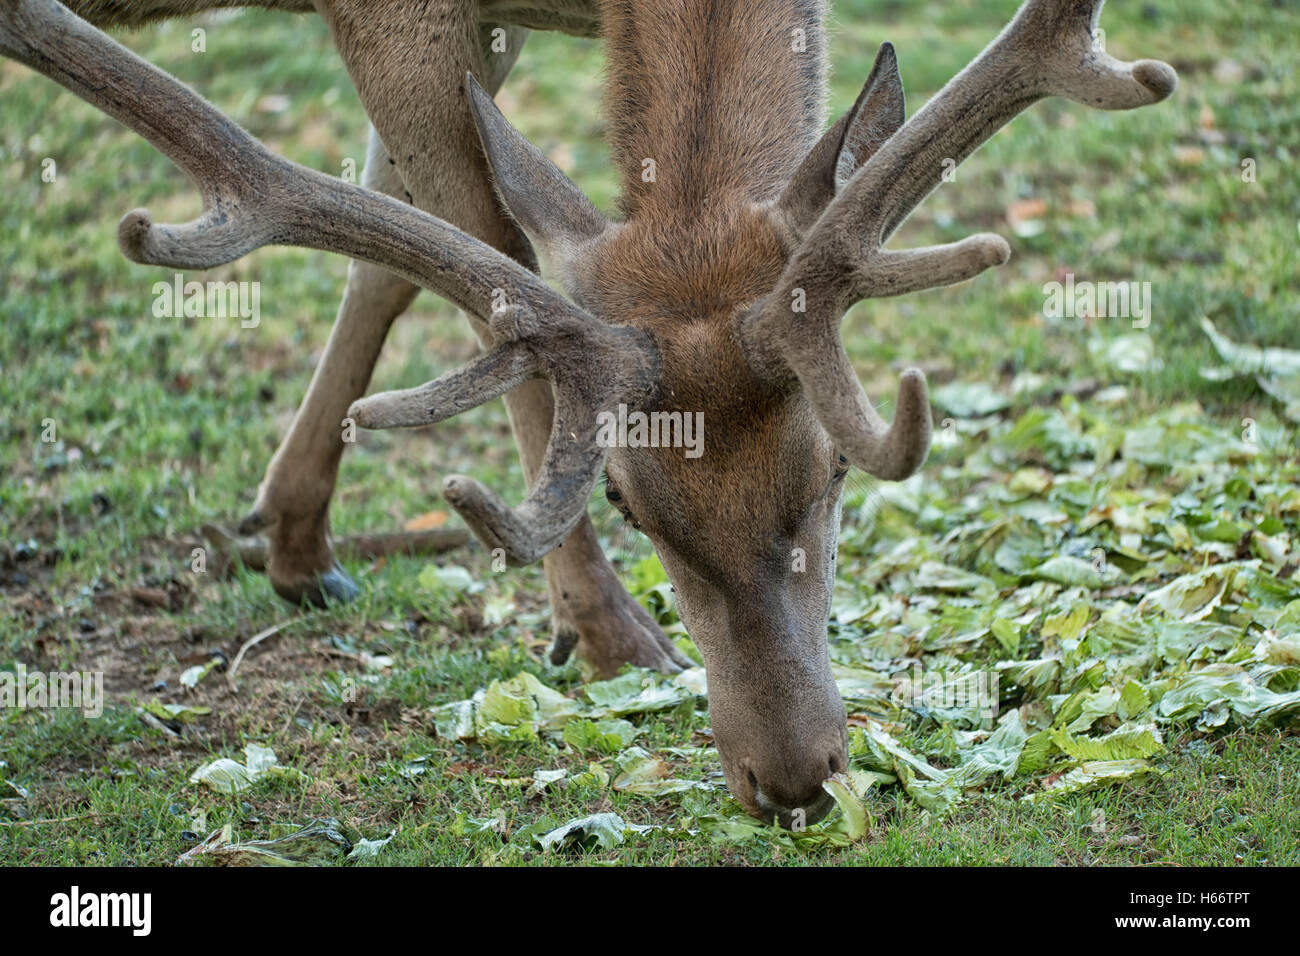 A stag eating leaves of the ground Stock Photo